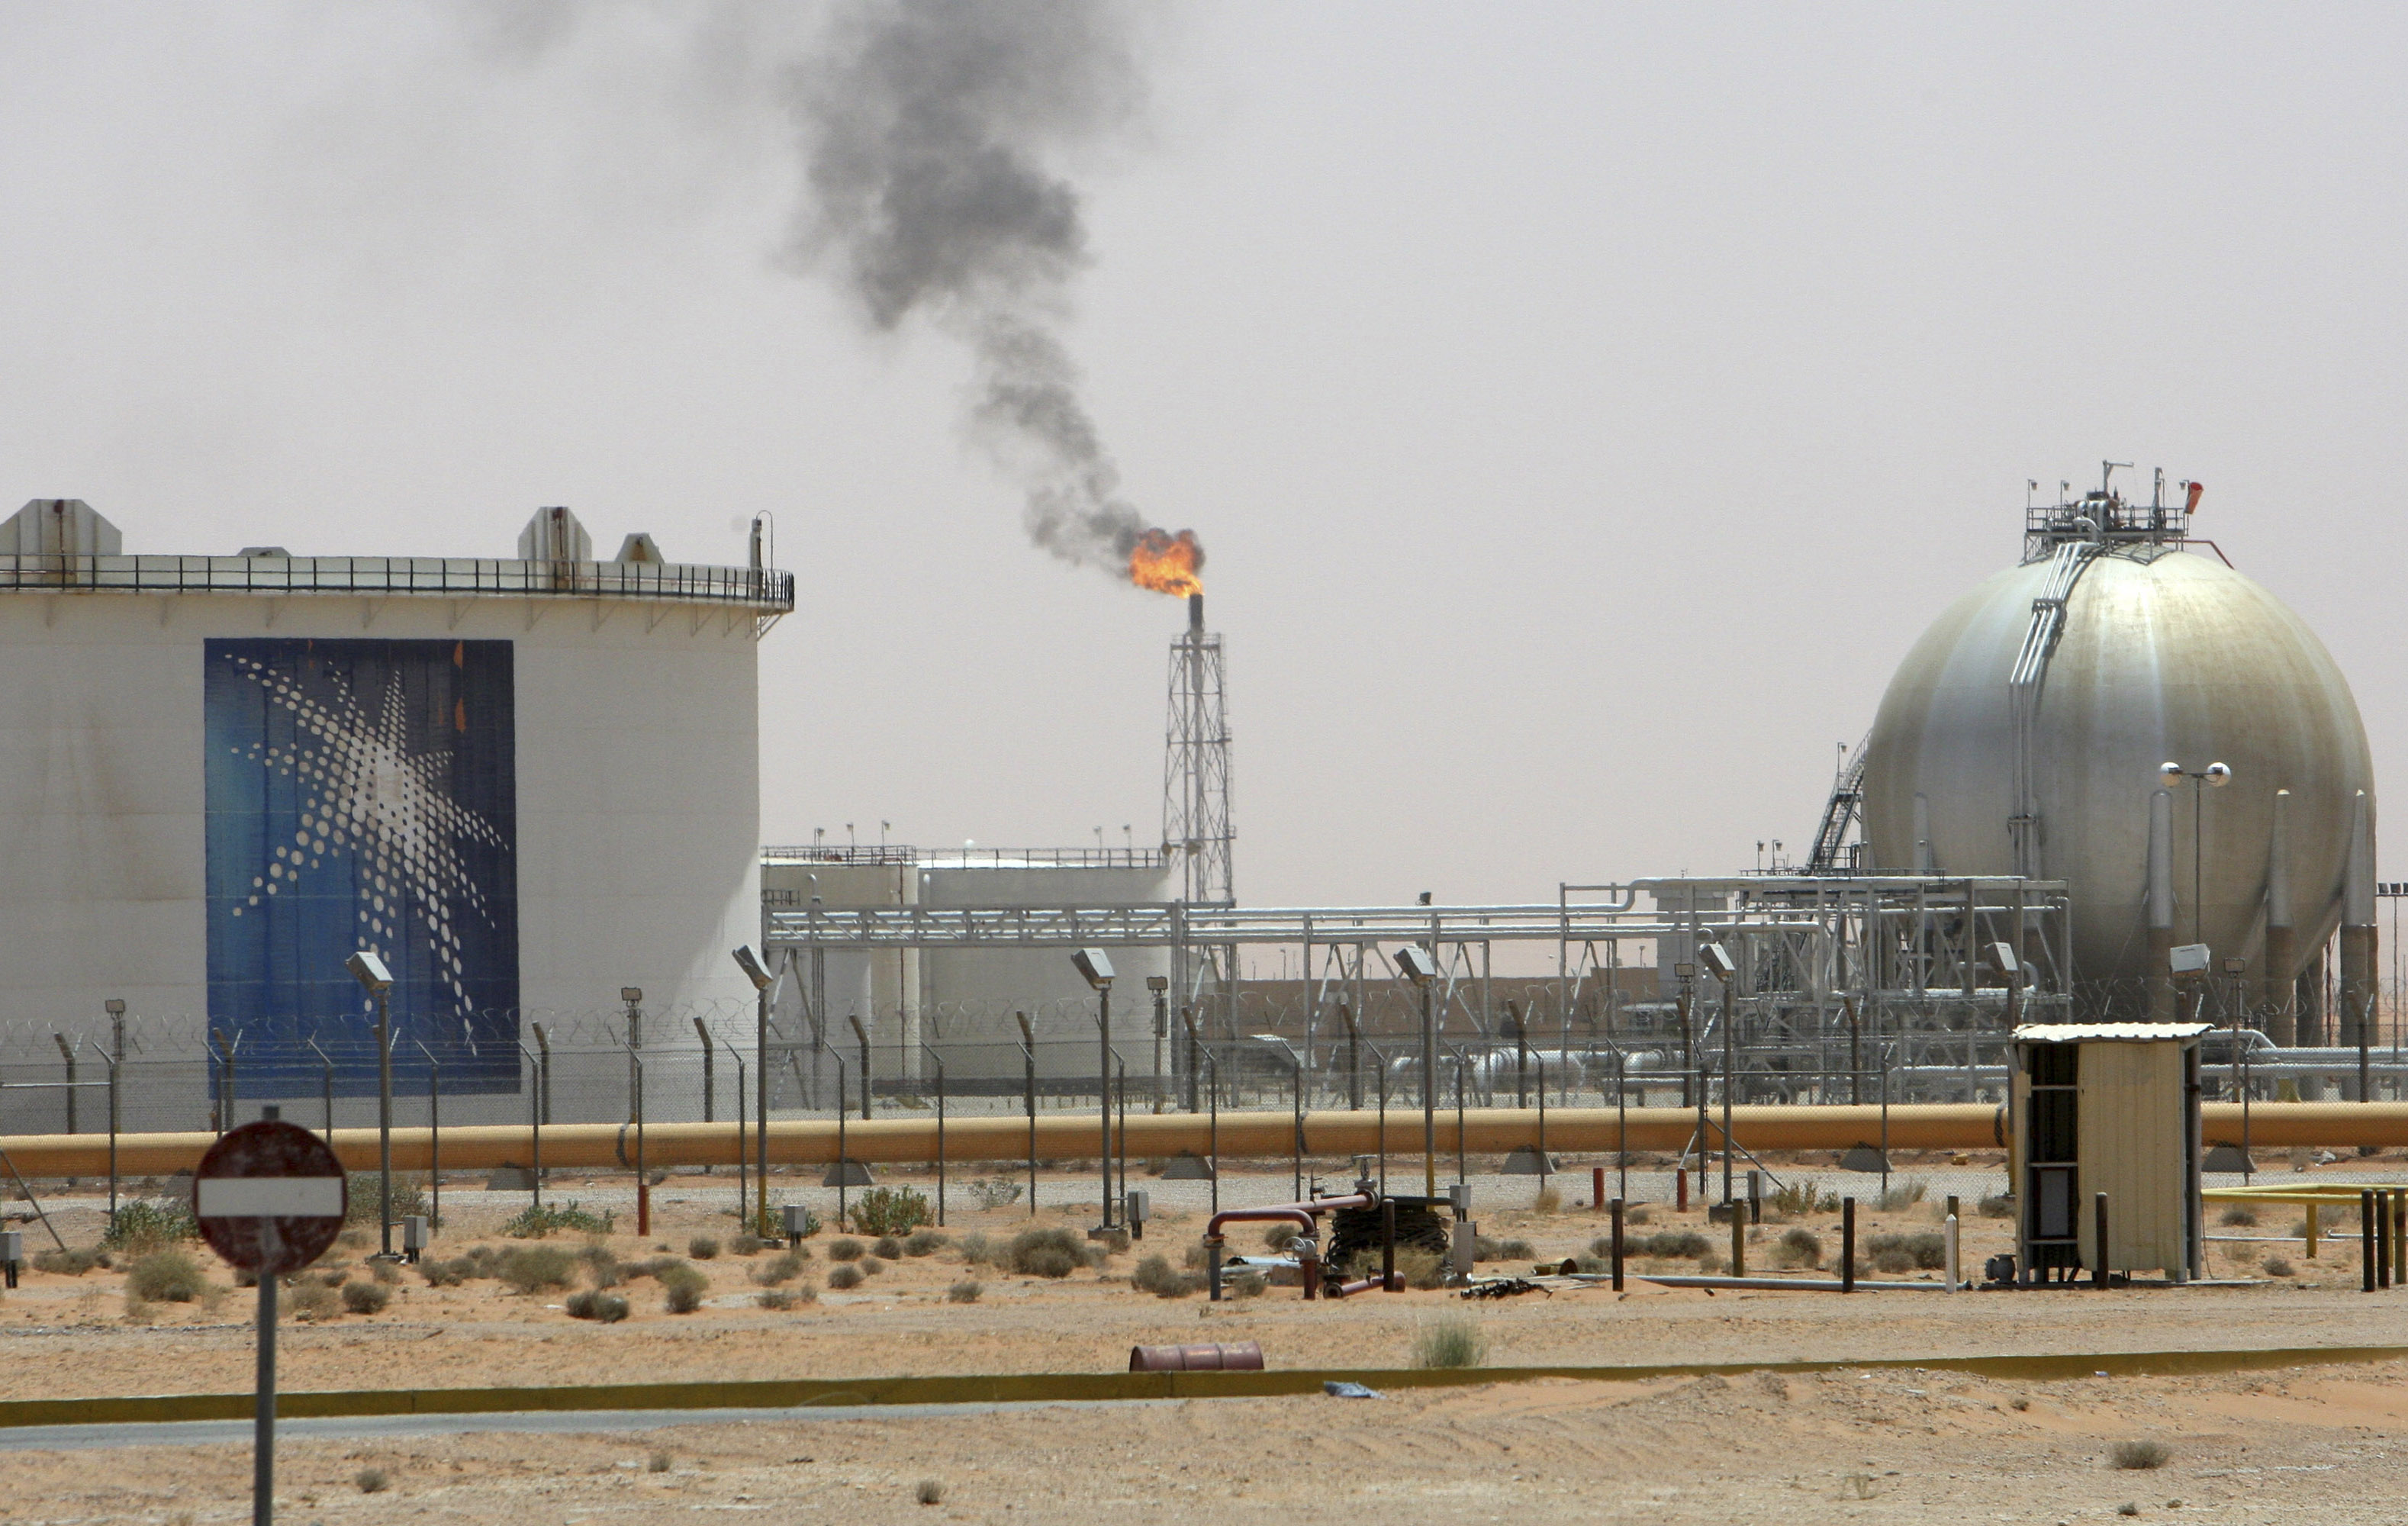 A gas flame is seen in the desert near the Khurais oilfield, about 160 km (99 miles) from Riyadh, June 23, 2008. State oil giant Saudi Aramco is adamant the biggest new field in its plan to raise oil capacity will arrive bang on schedule in June next year. REUTERS/Ali Jarekji  (SAUDI ARABIA)